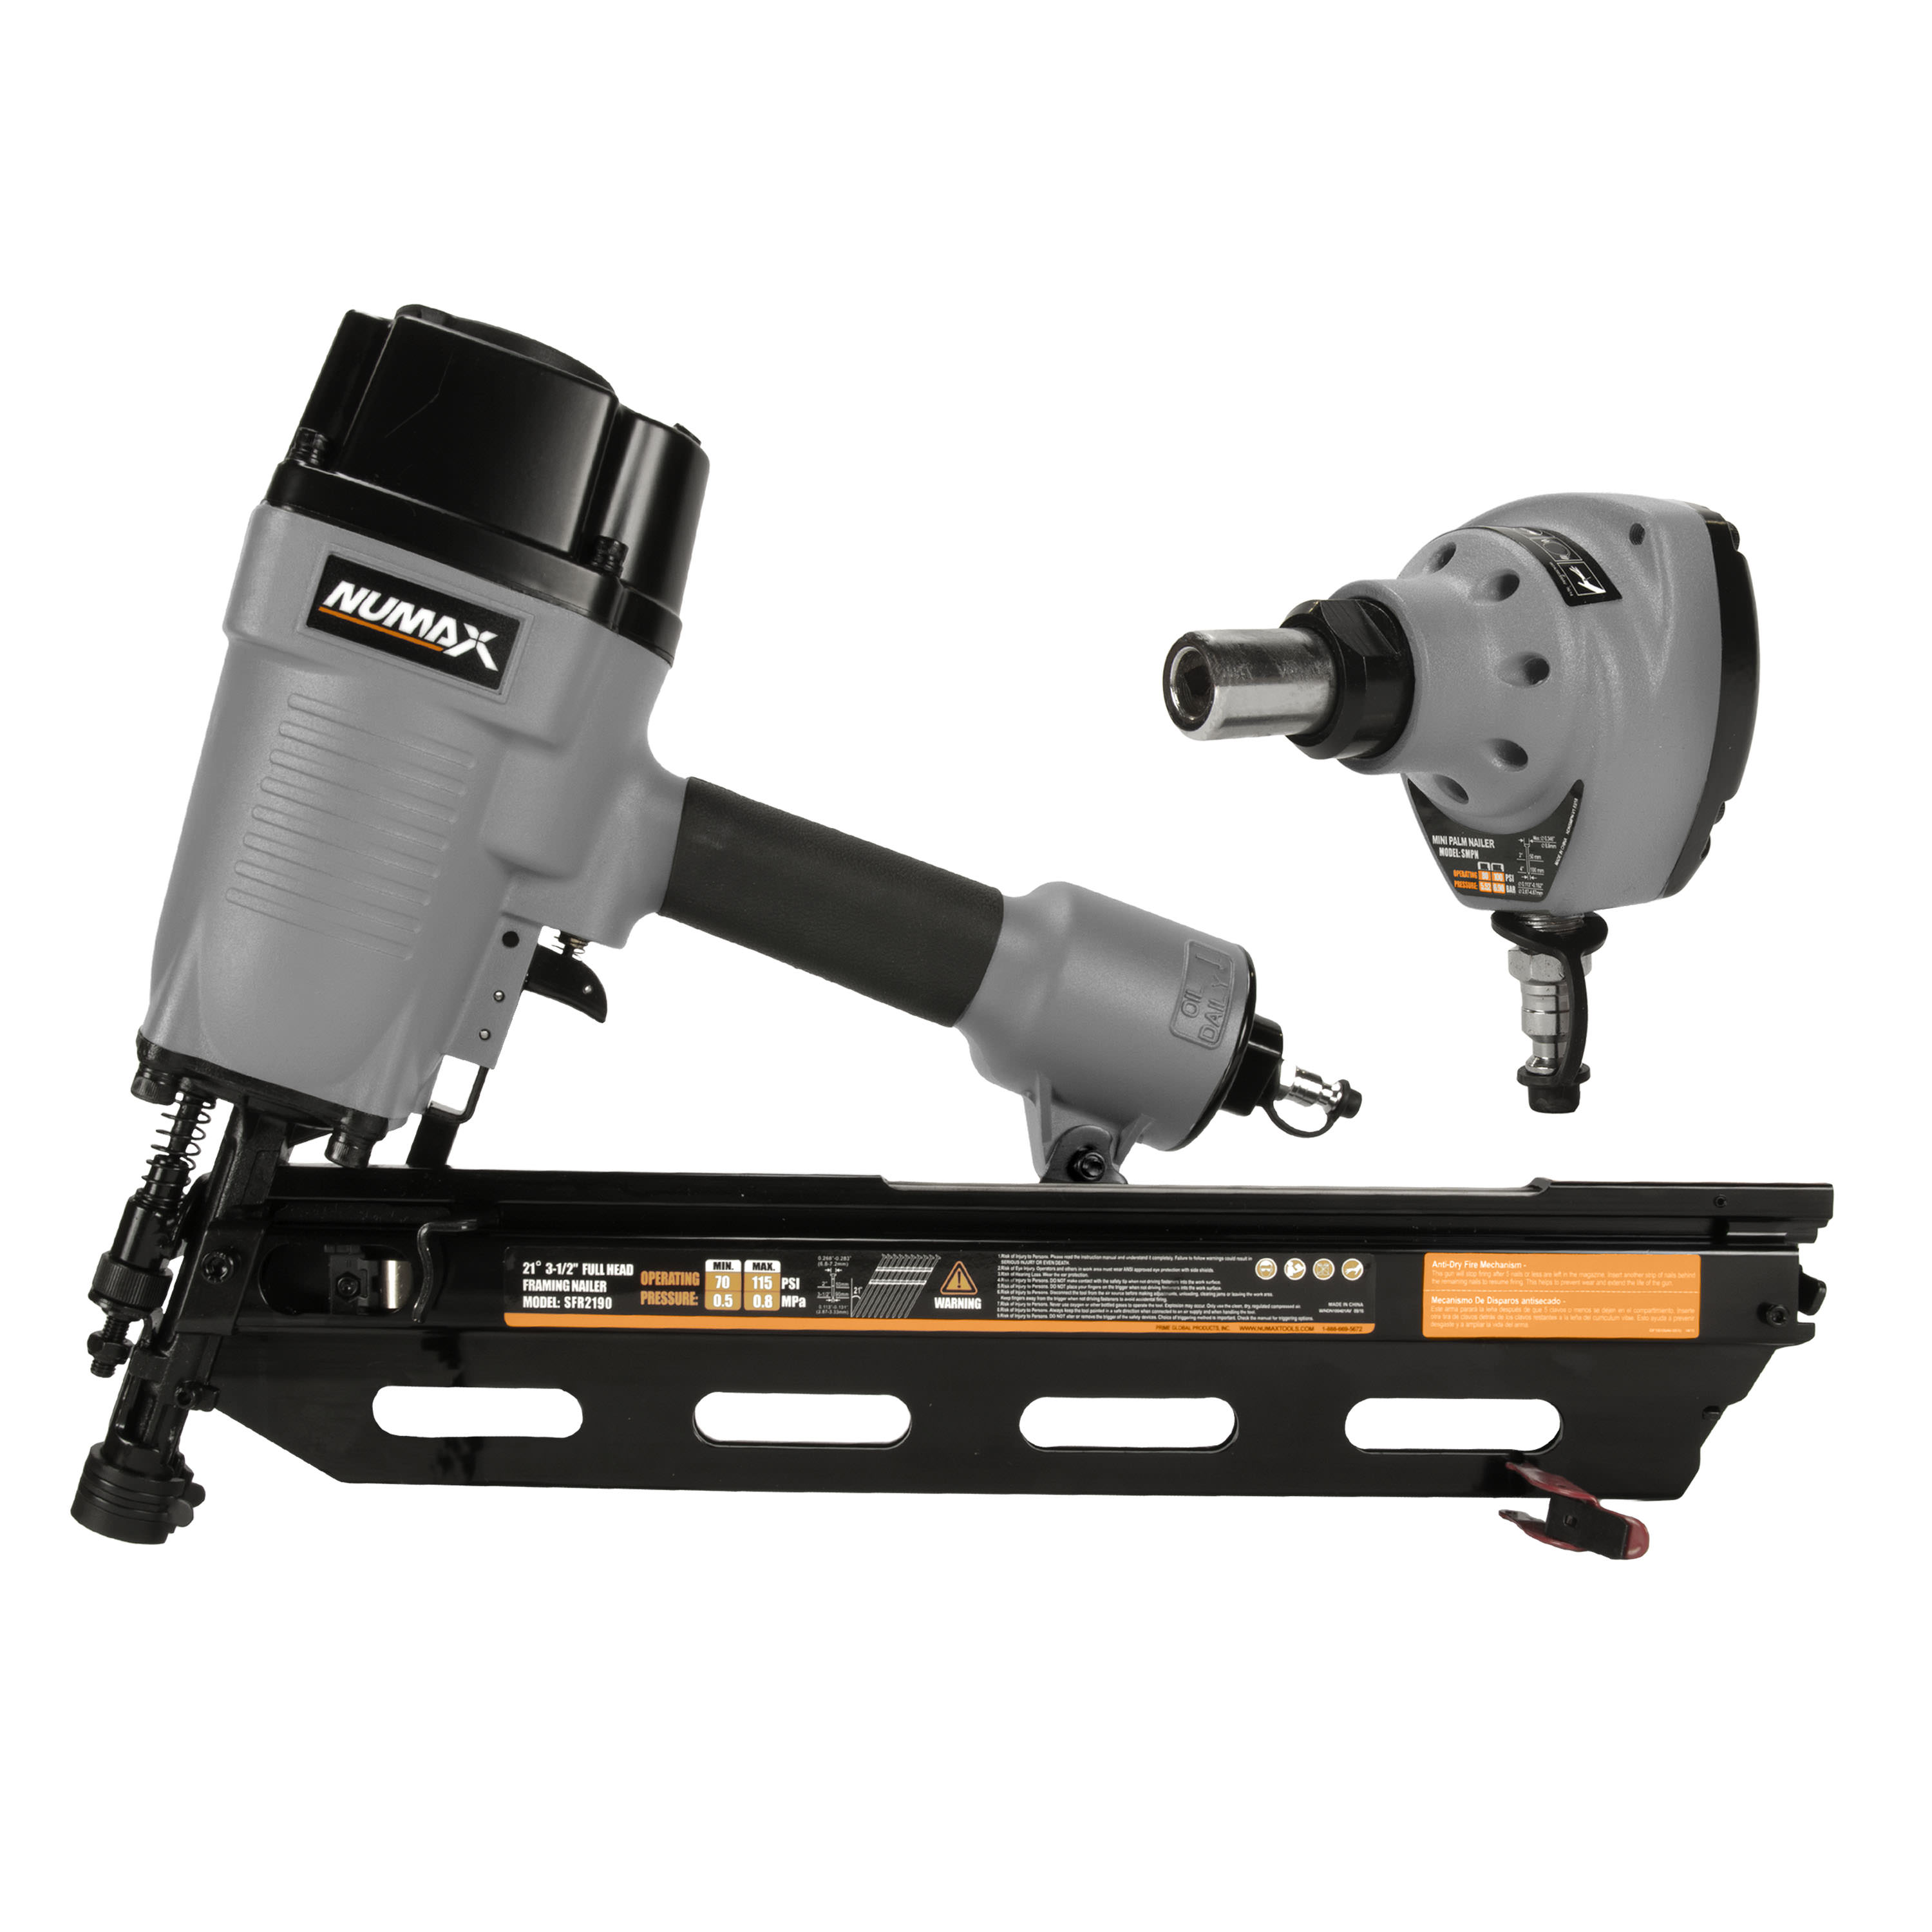 Numax 21° Framing Nailer and Palm Nailer Kit